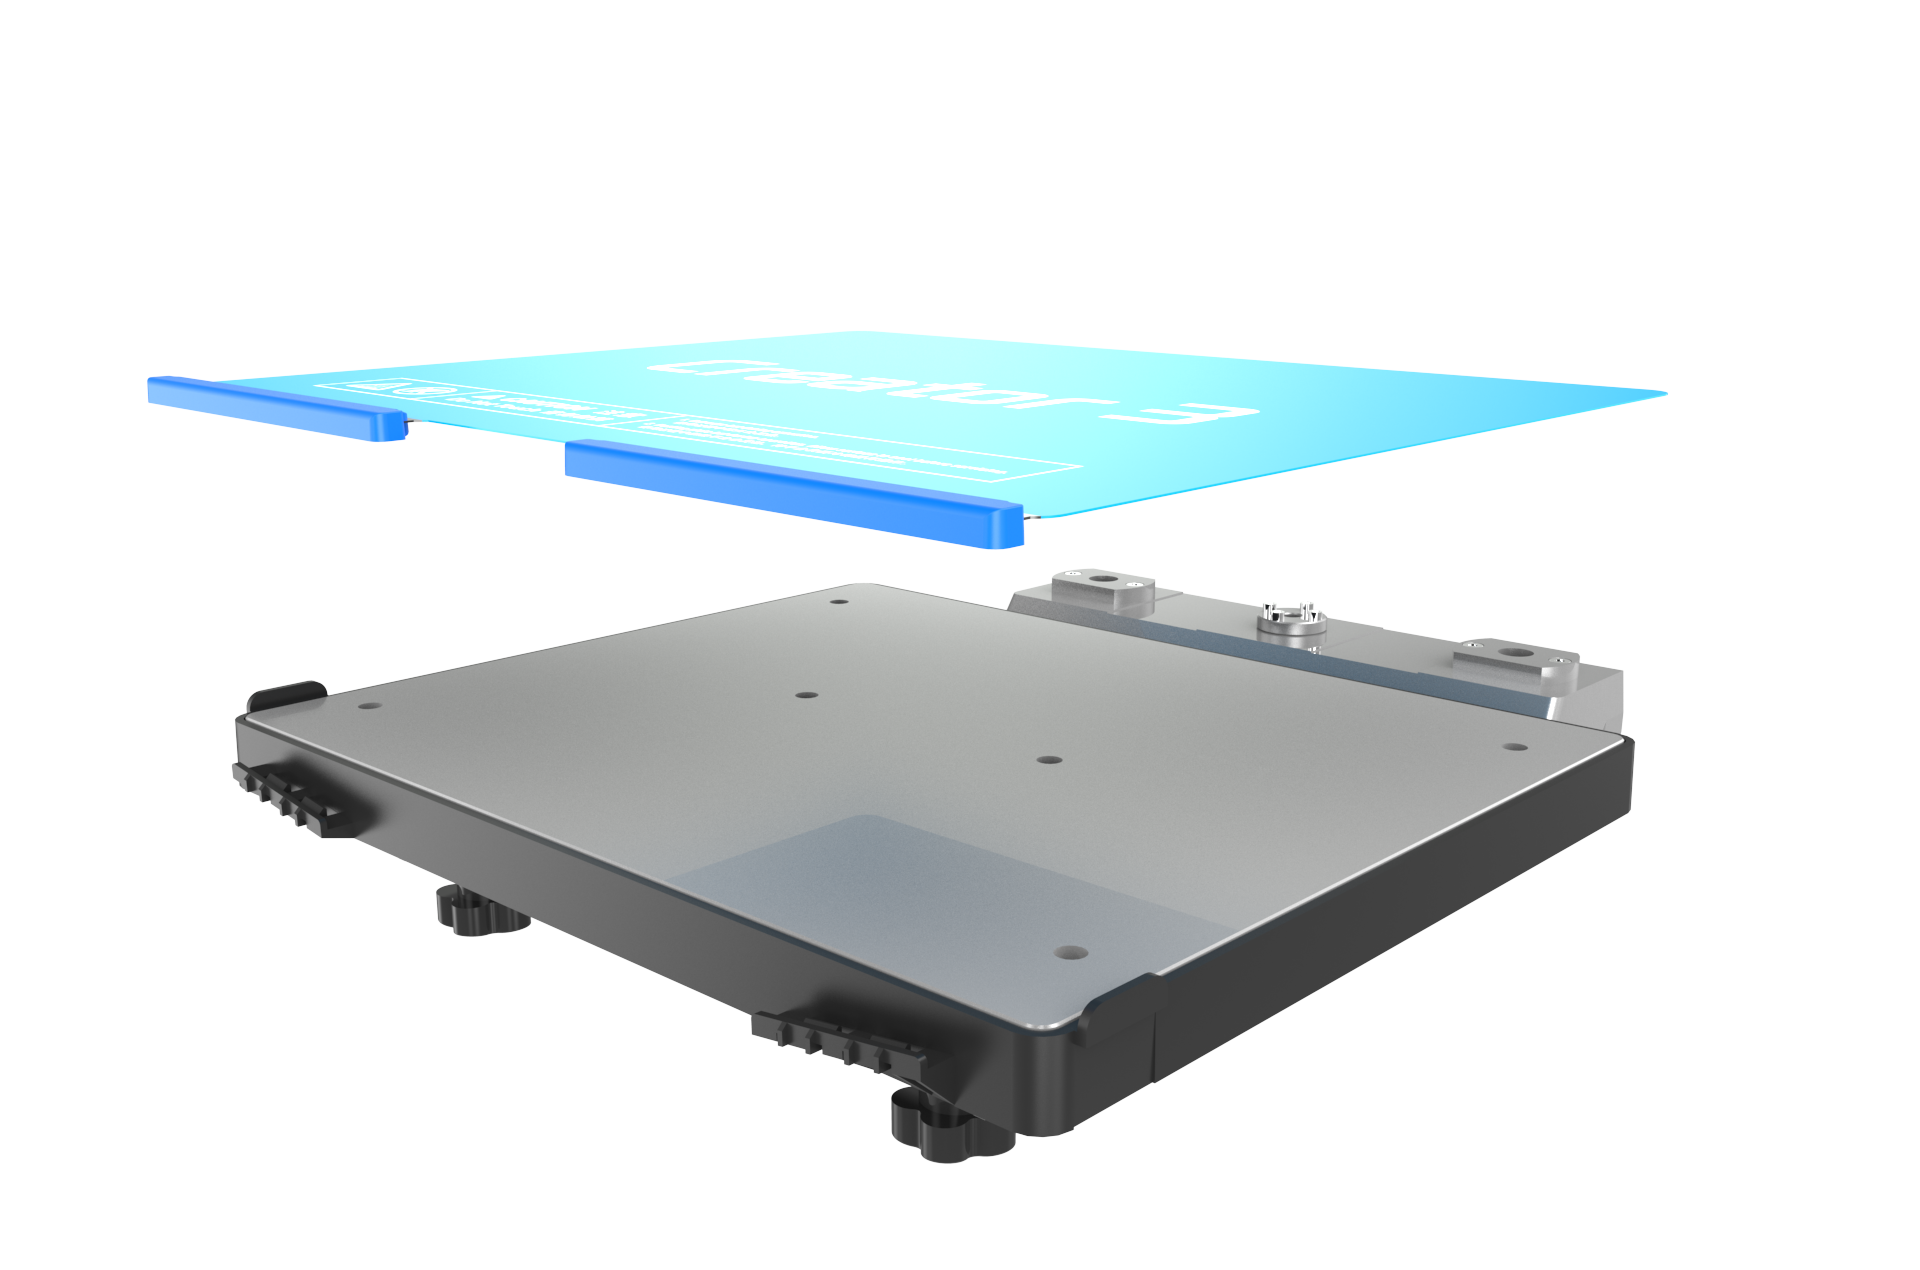 Removable build plate